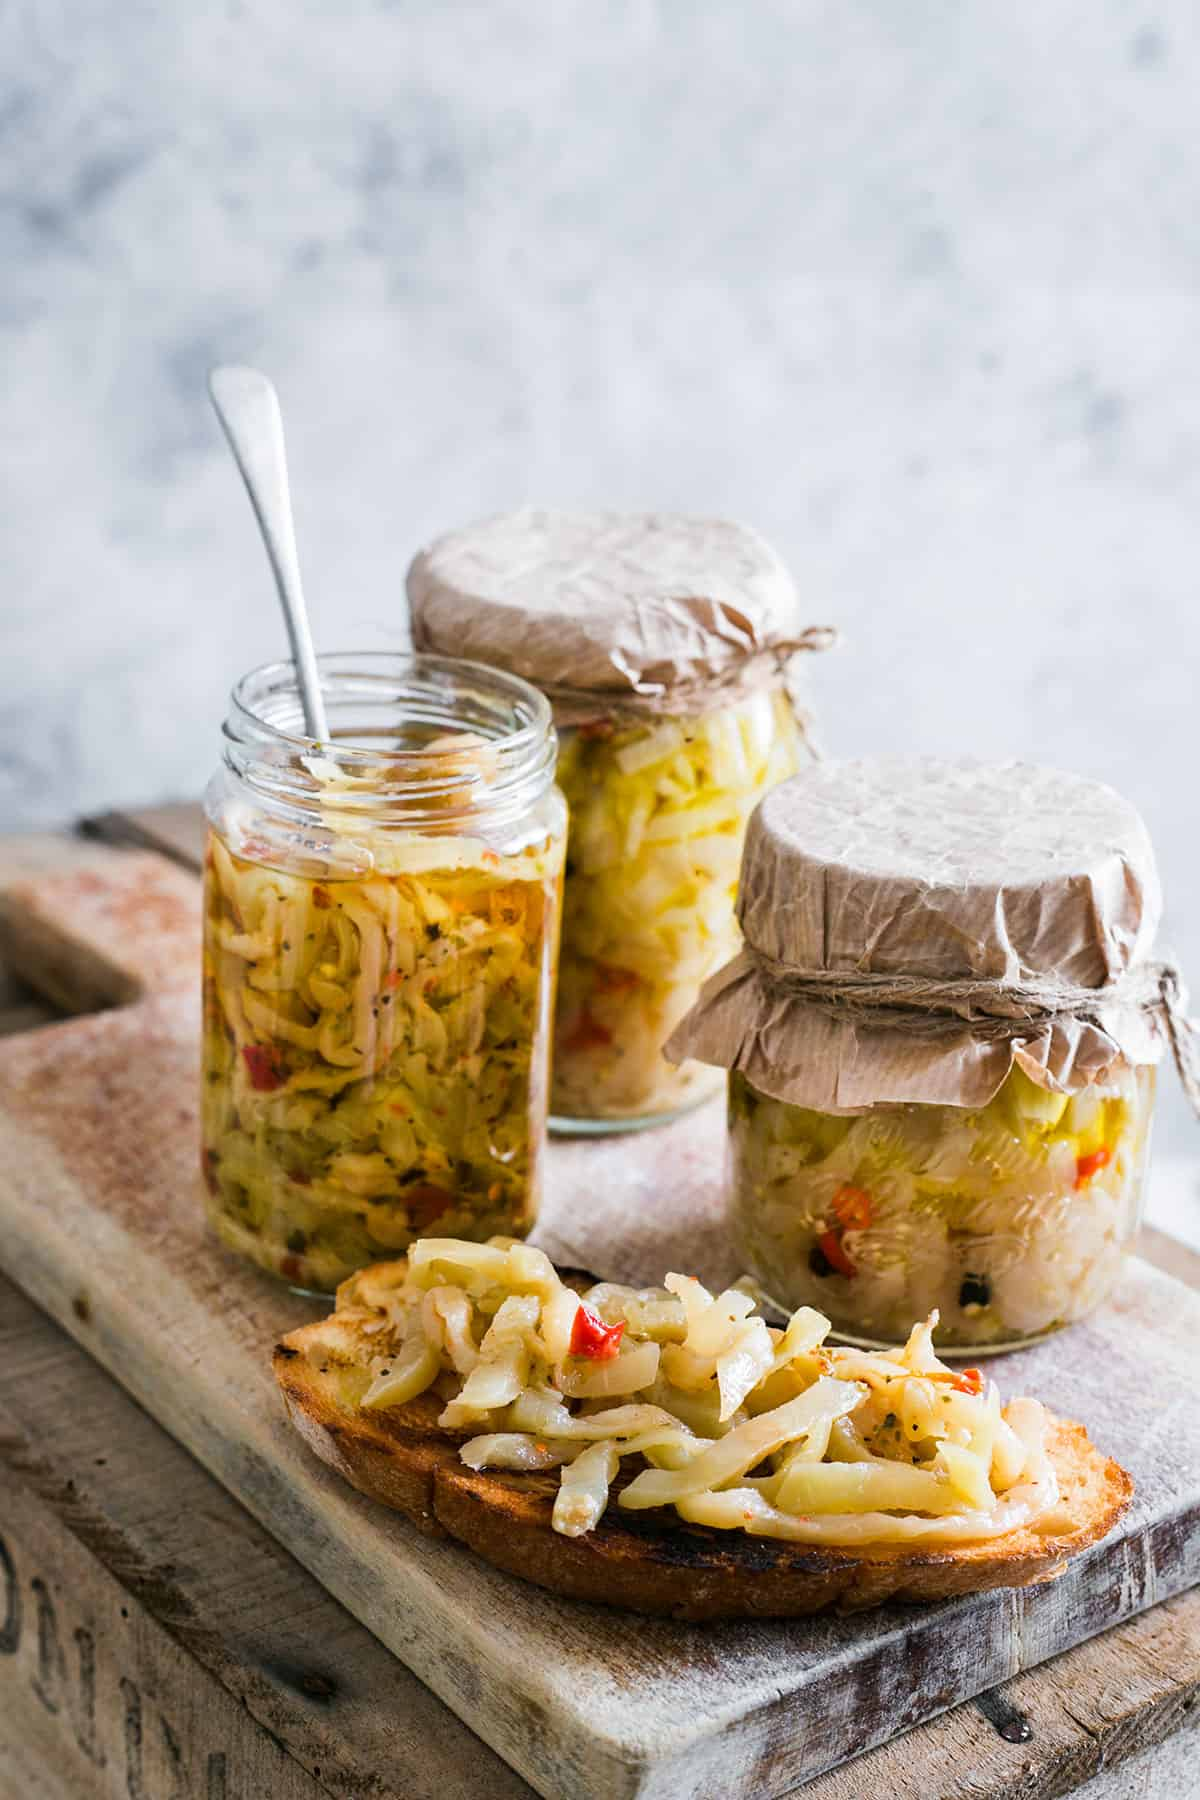 Italian pickled eggplant with olive oil.